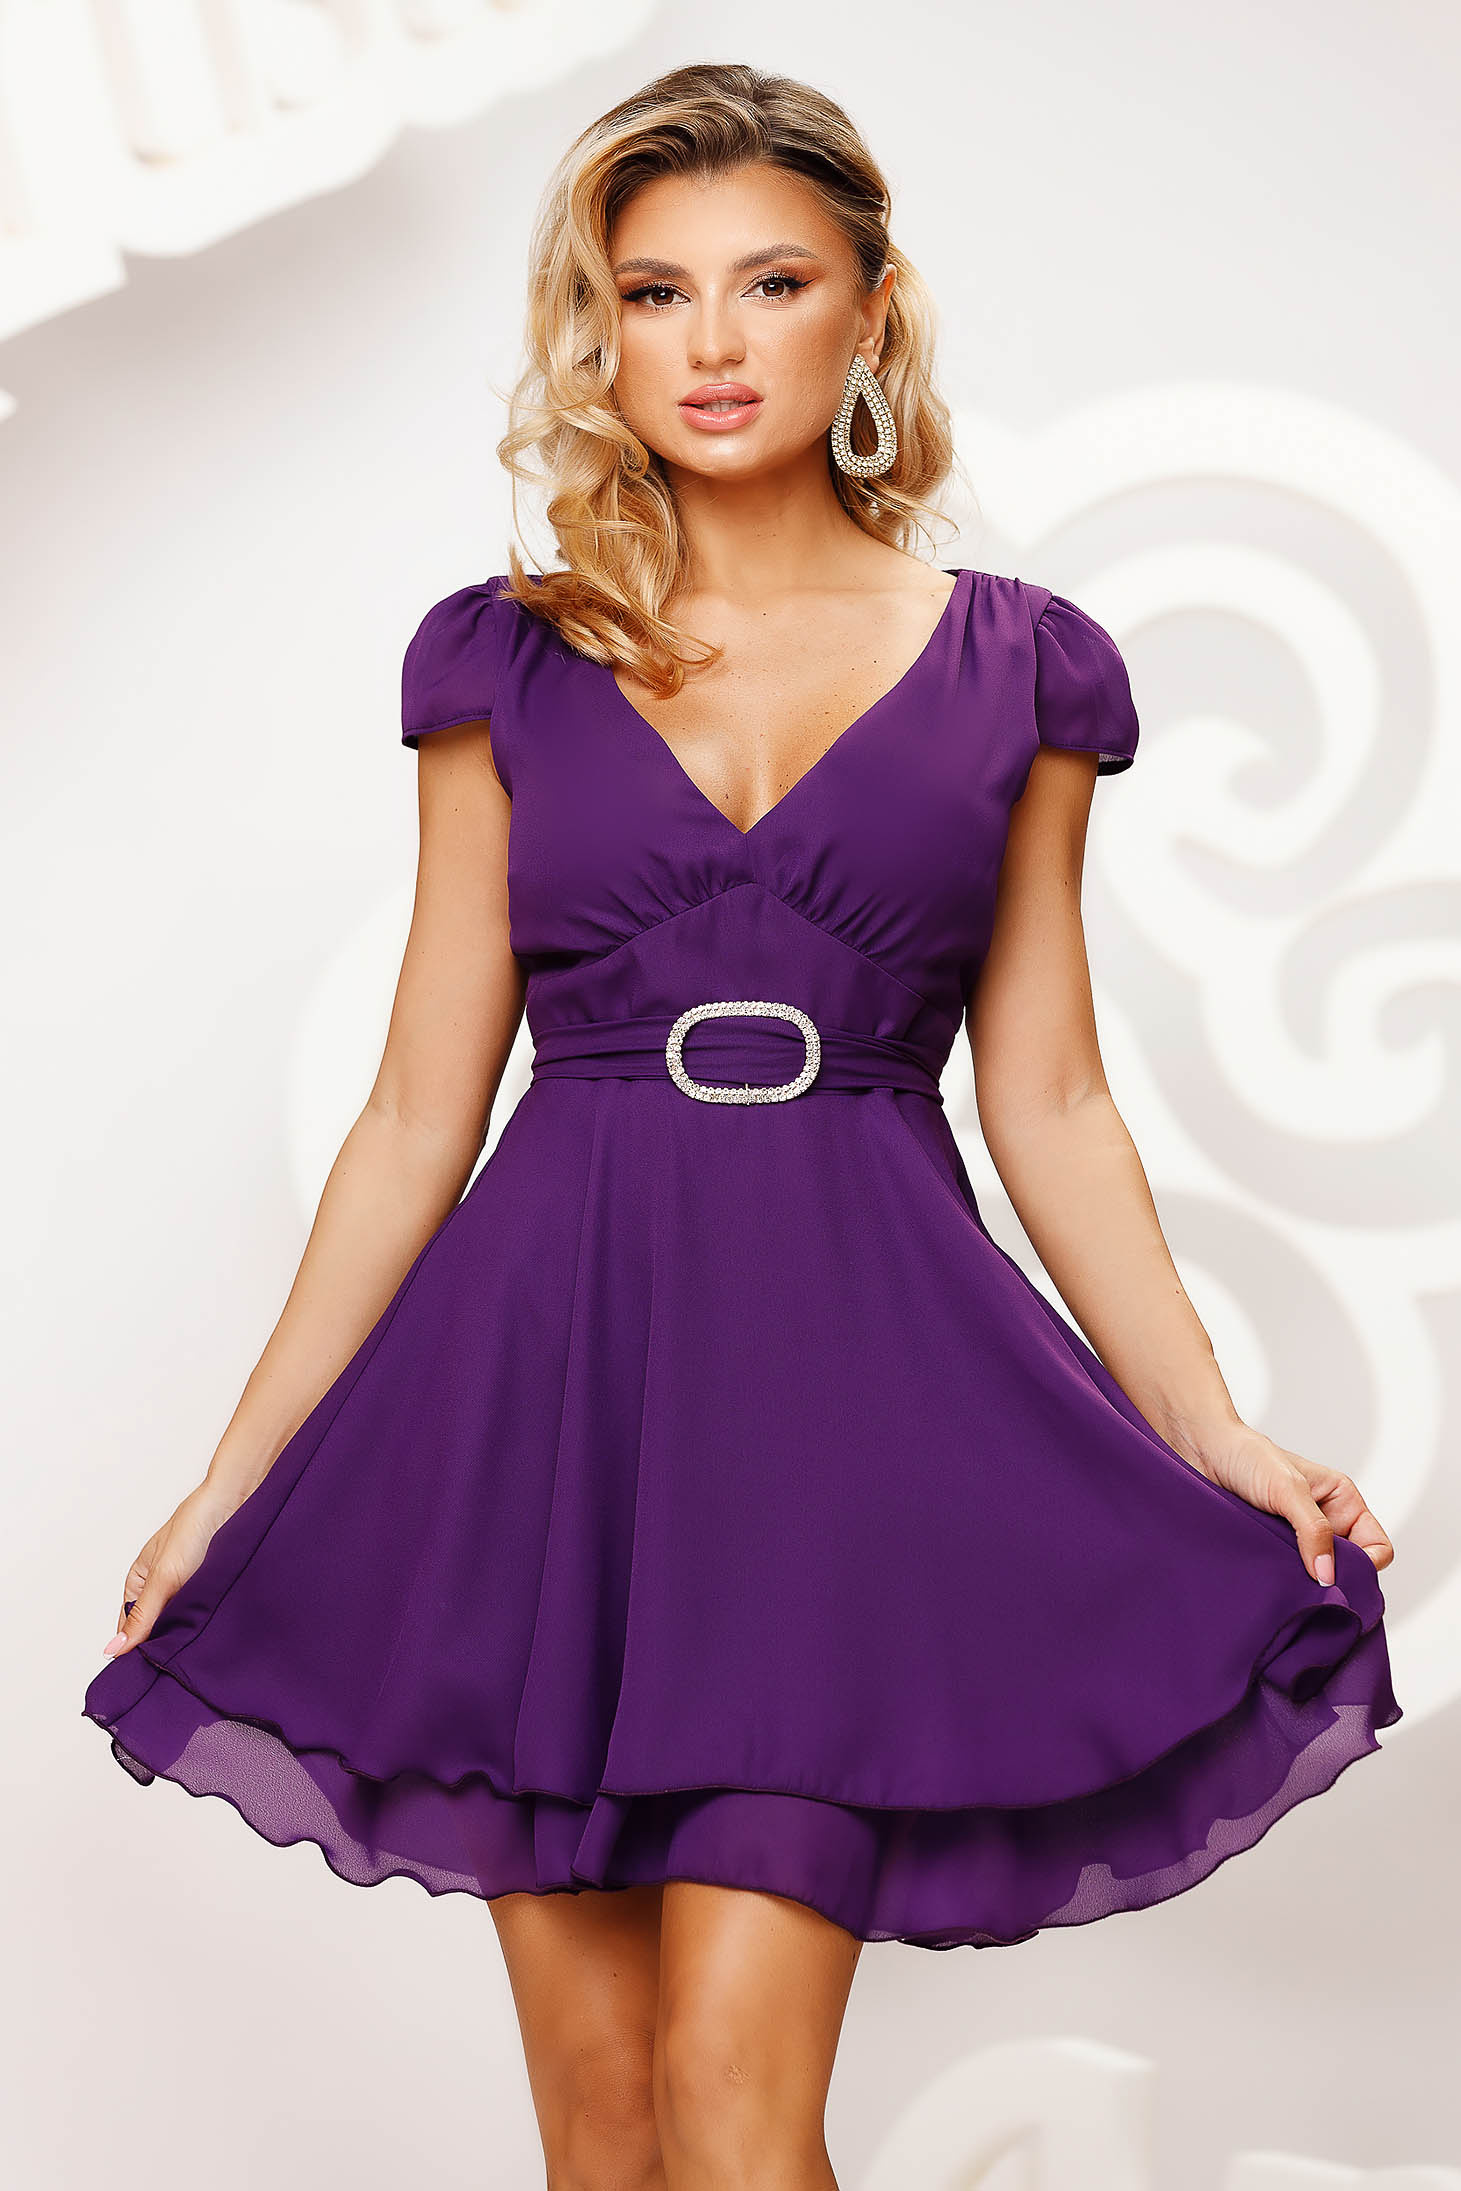 Purple dress short cut occasional cloche airy fabric short sleeves